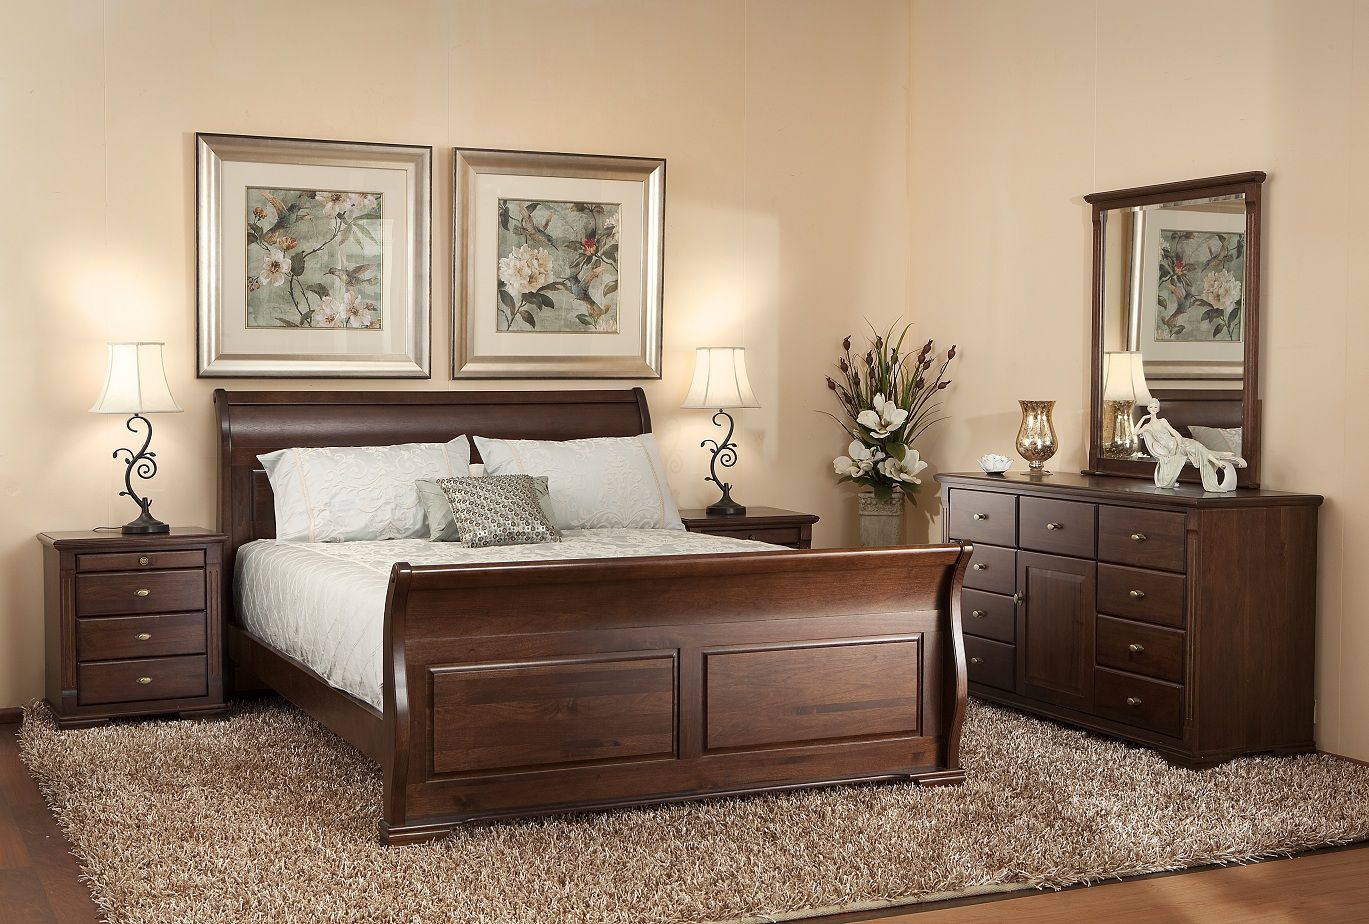 Combine walnut bedroom furniture with interior decor - Designalls